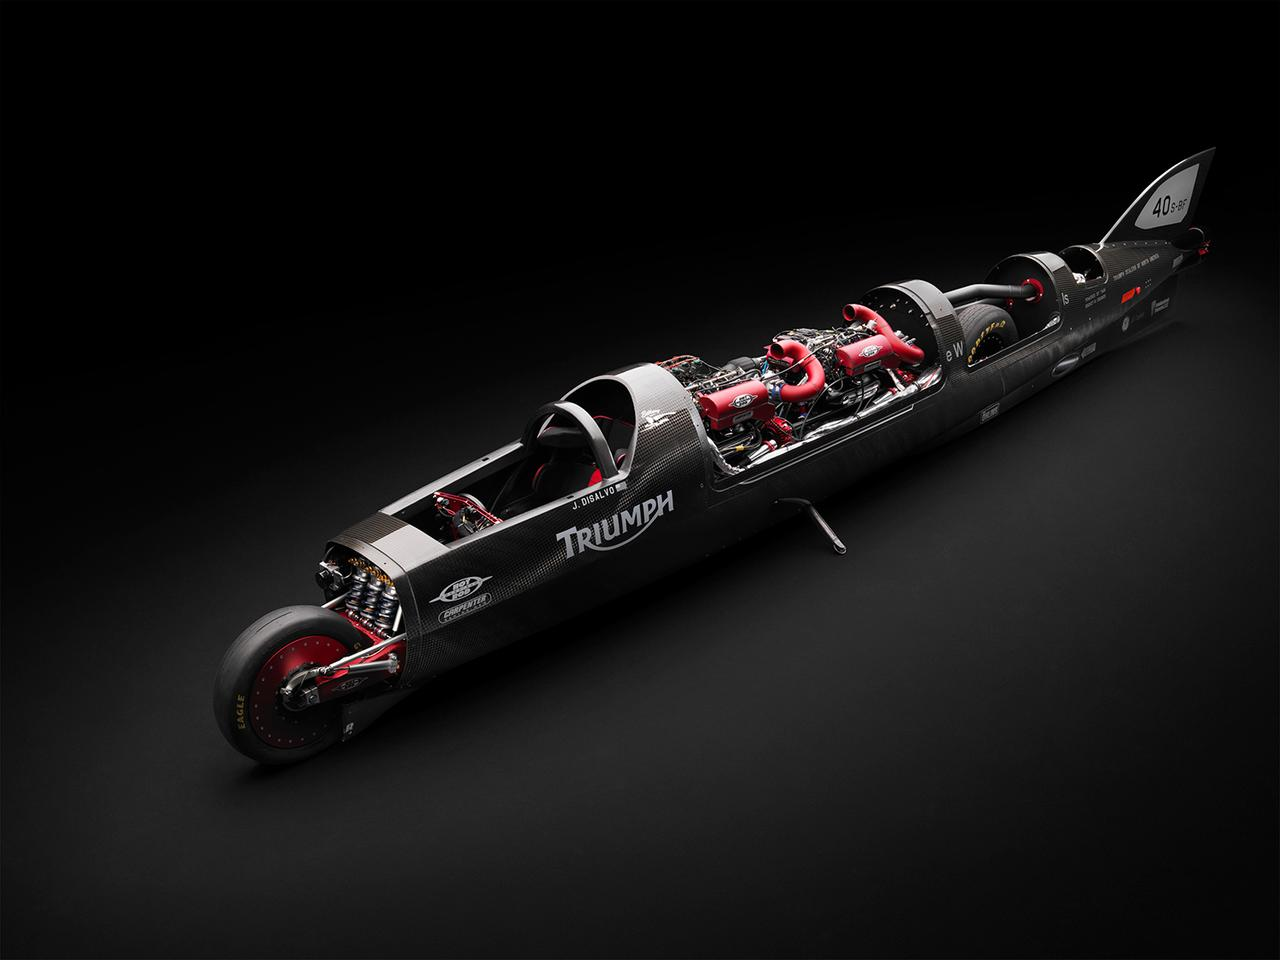 The Castrol Rocket features two turbocharged Triumph Rocket III engines producing a combined 1,000+ hp